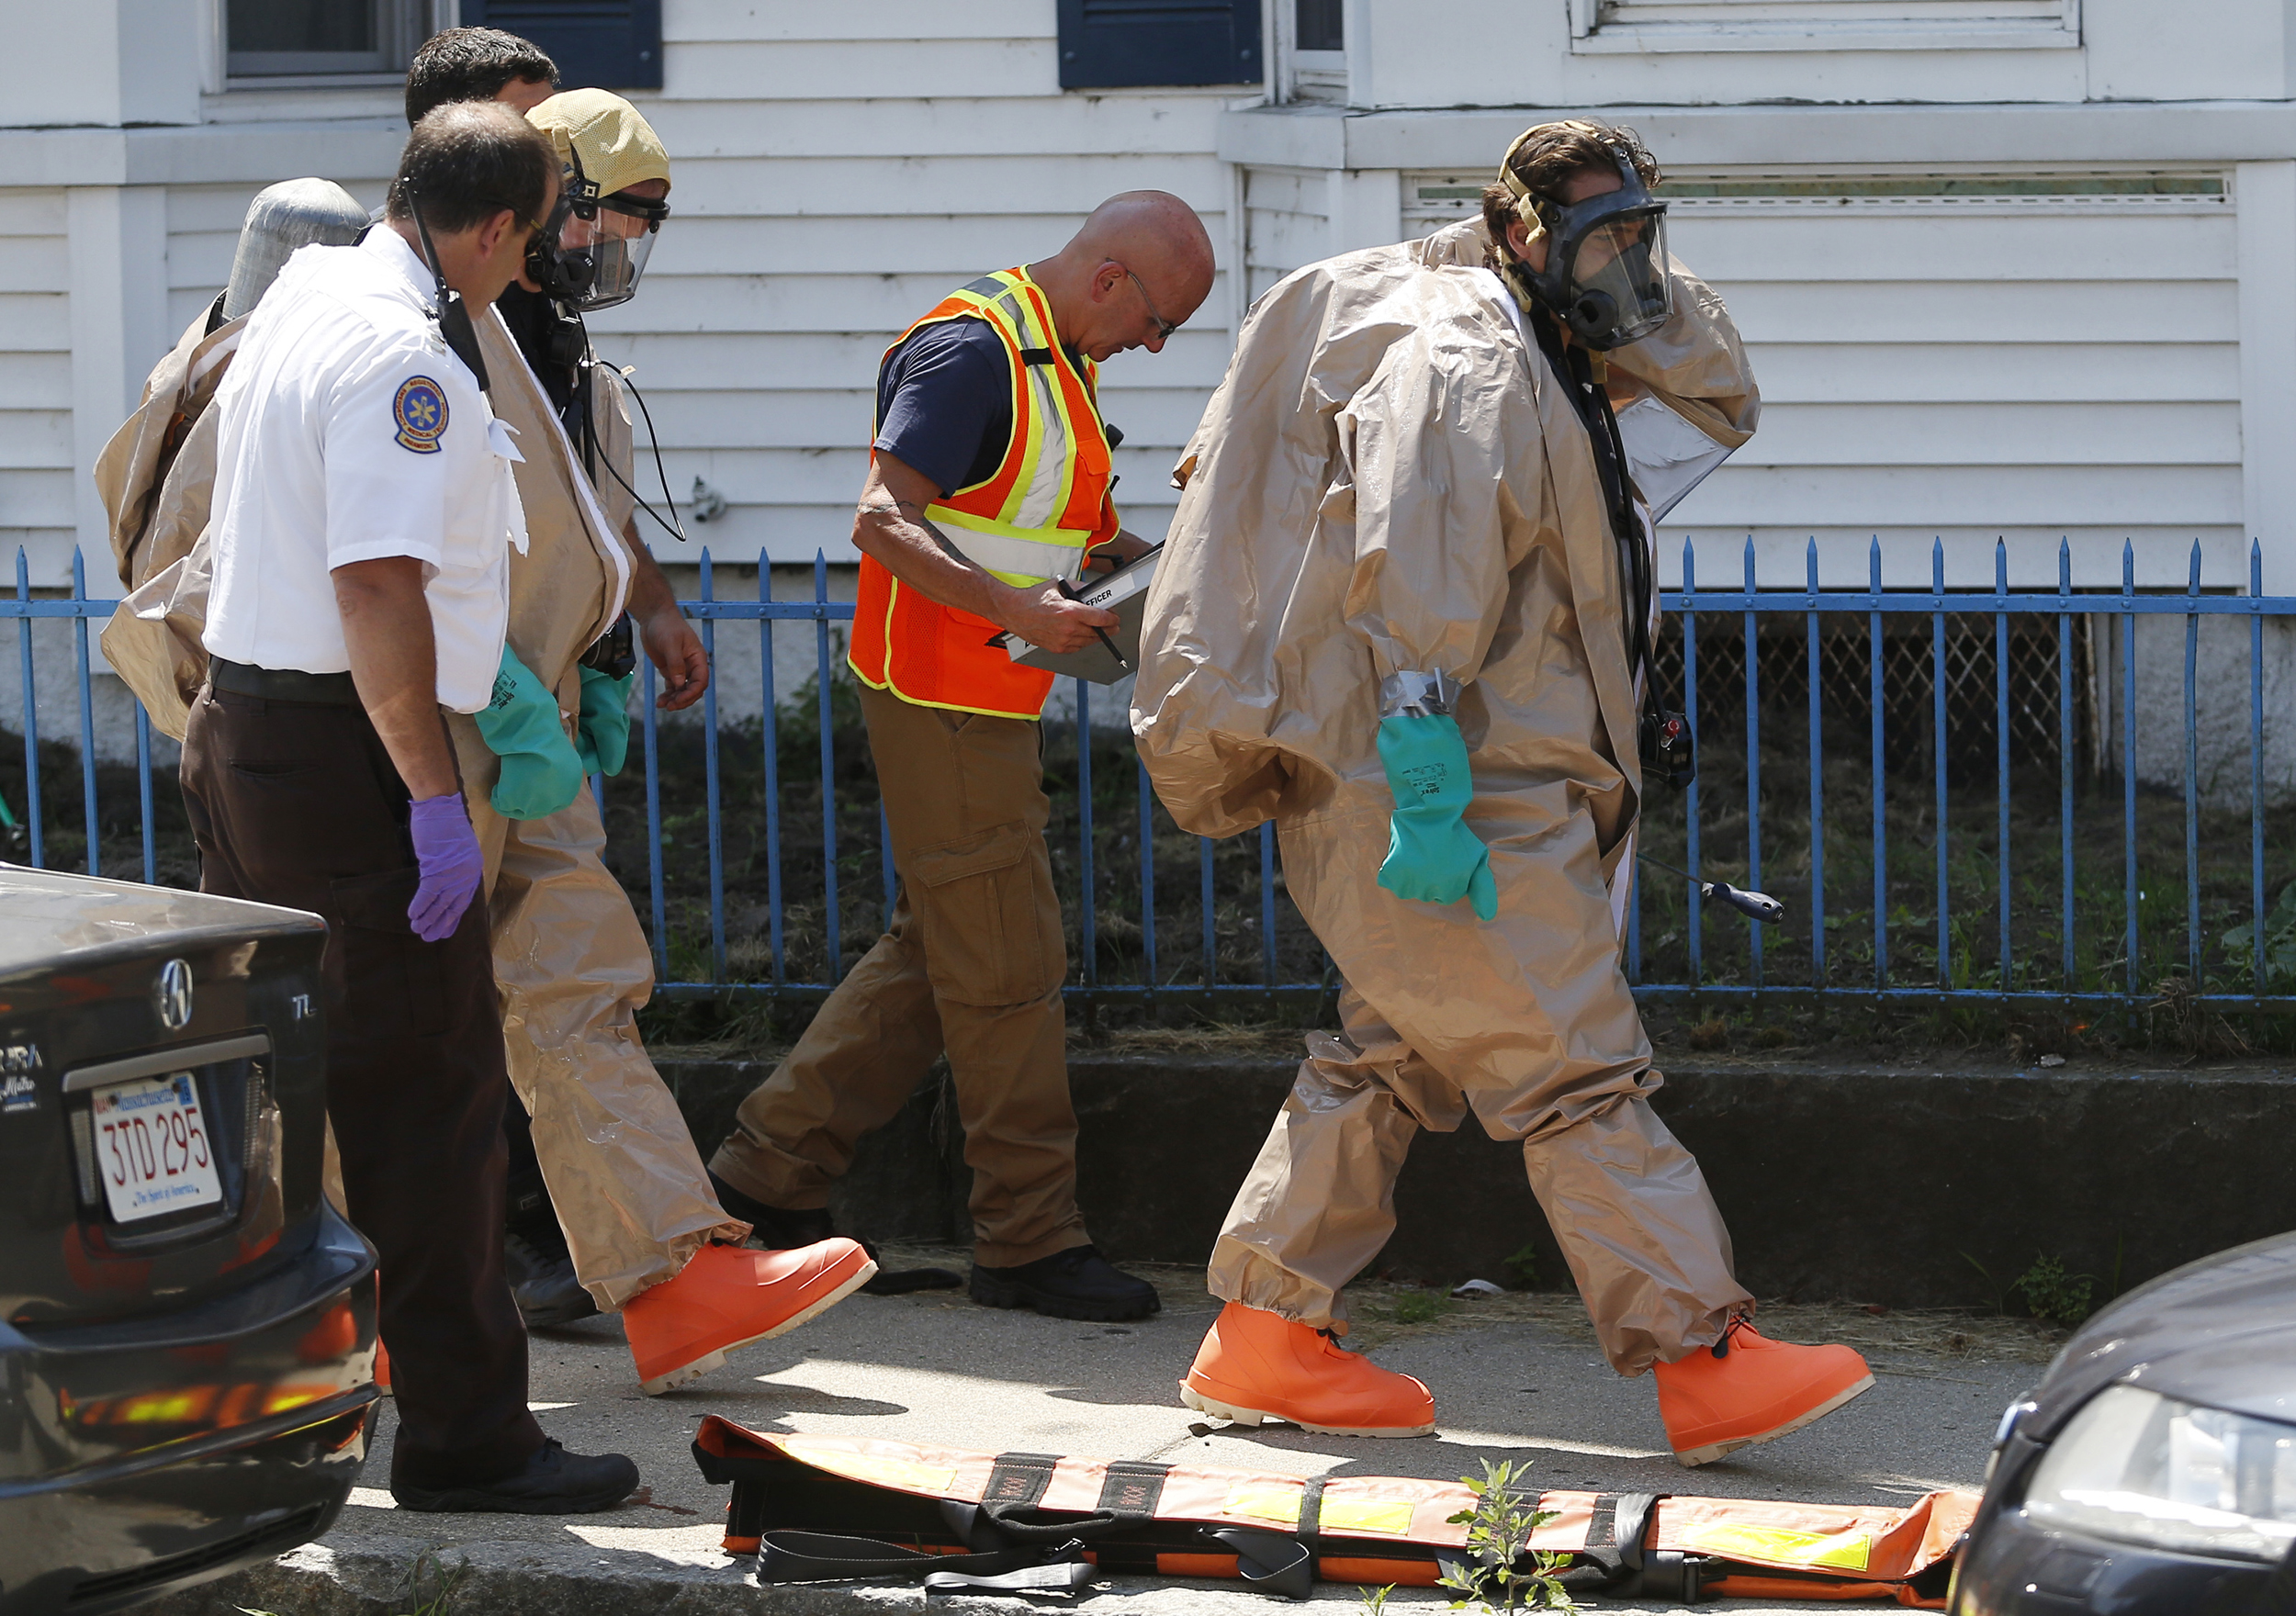 Synthetic-opioids-even-more-deadly,-CDC-says